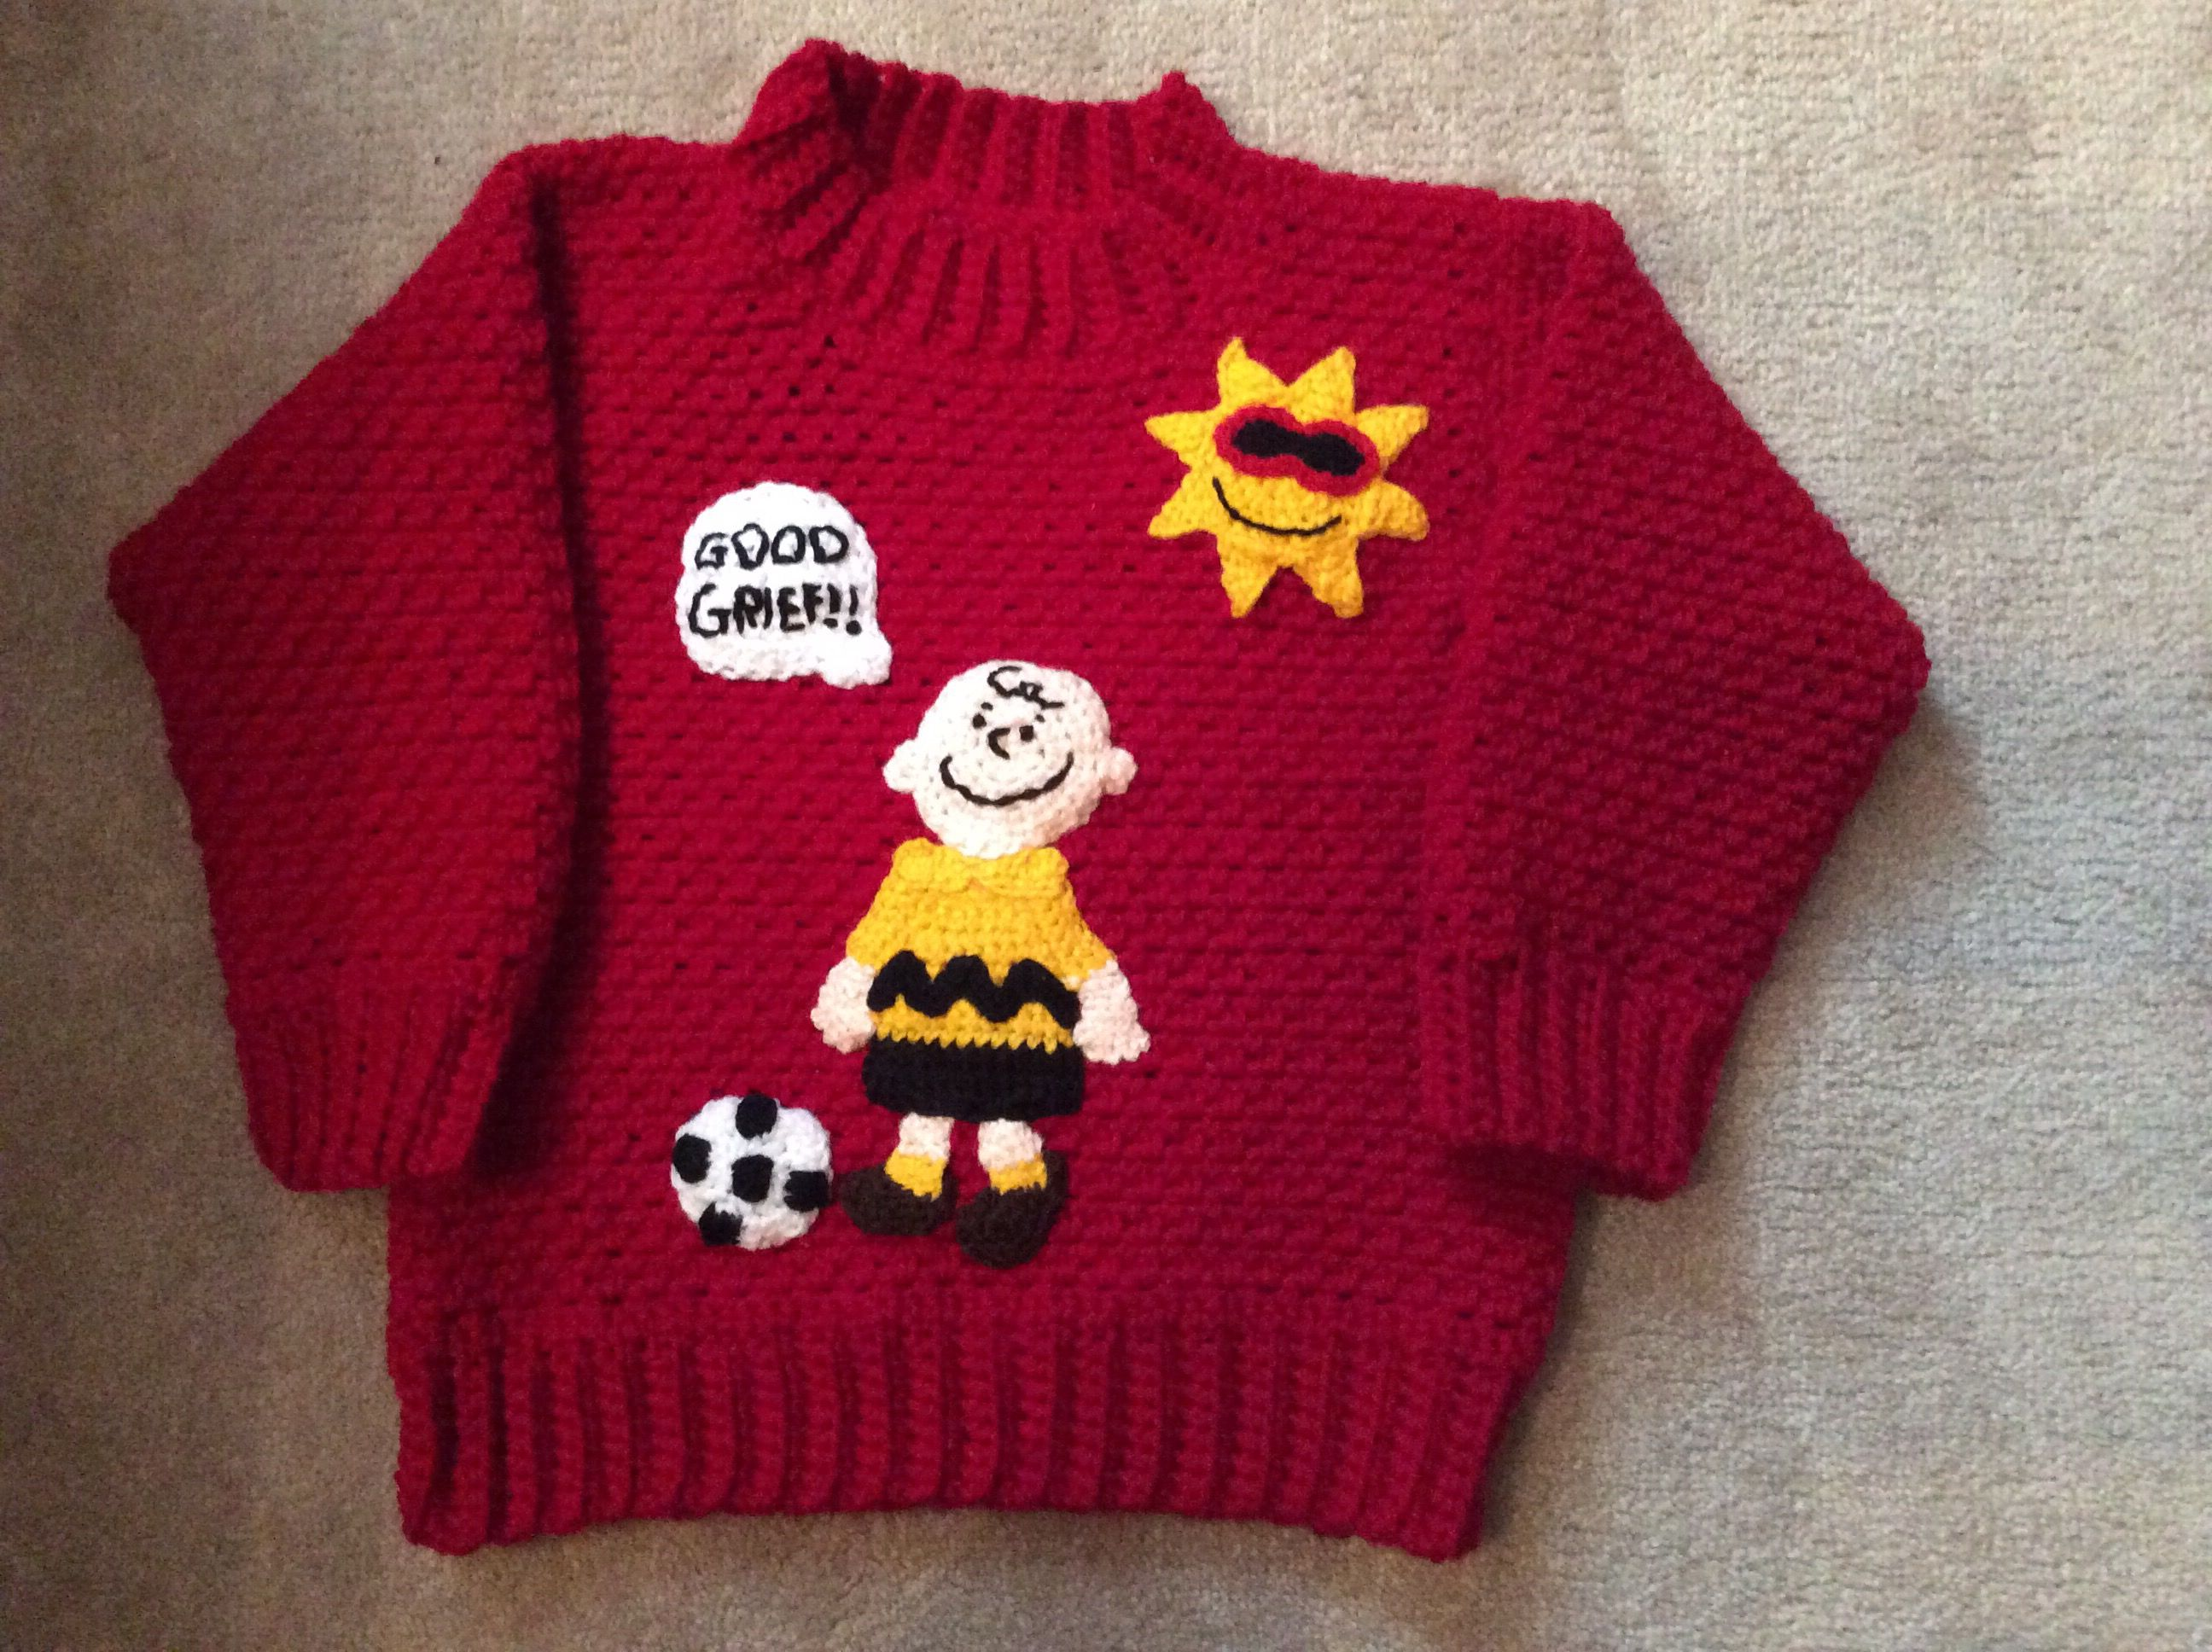 Crochet Charlie Brown sweater front | Crochet -Finished Projects ...